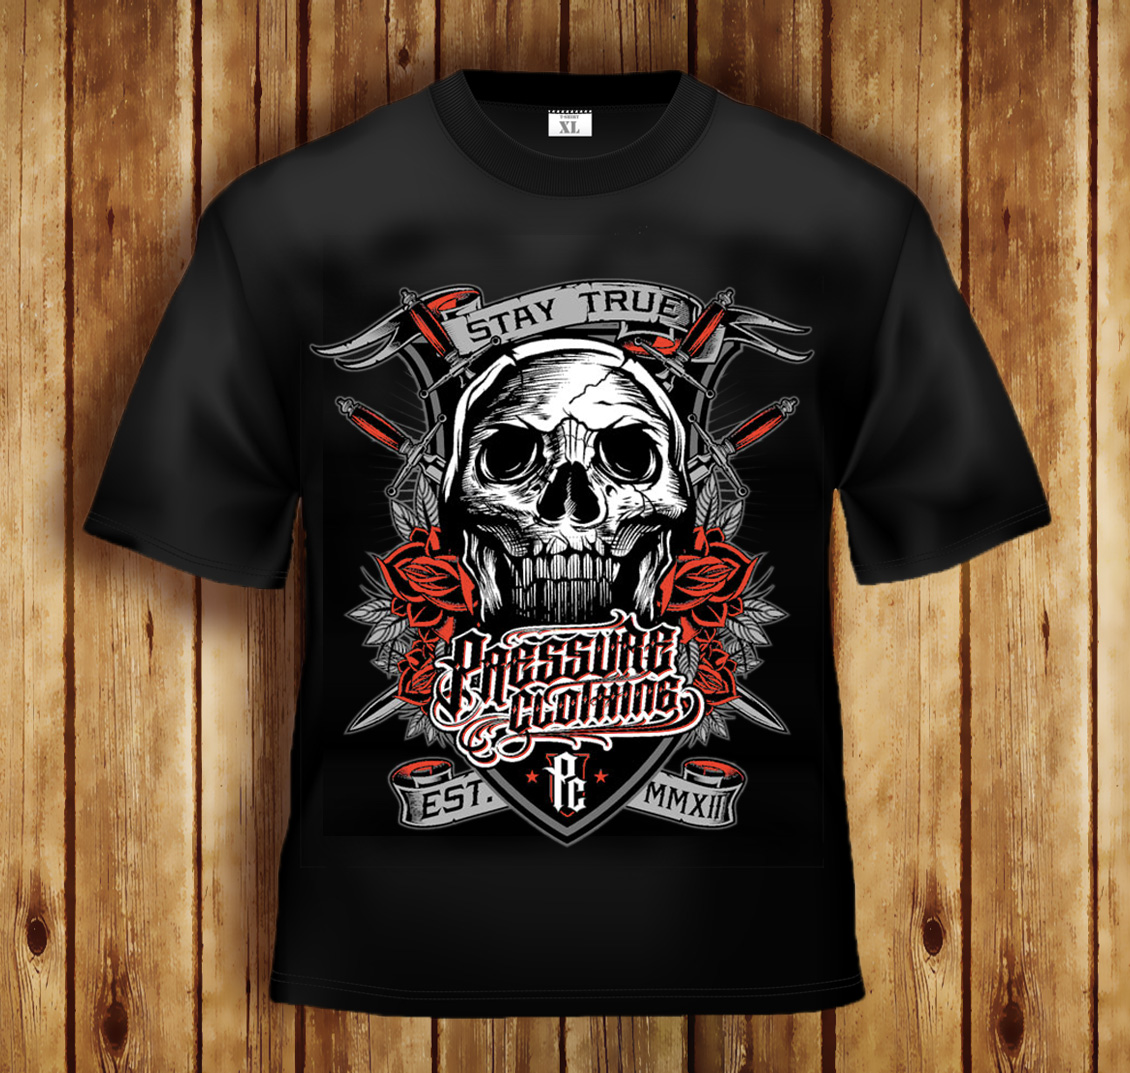 Pressure Clothing T-Shirts